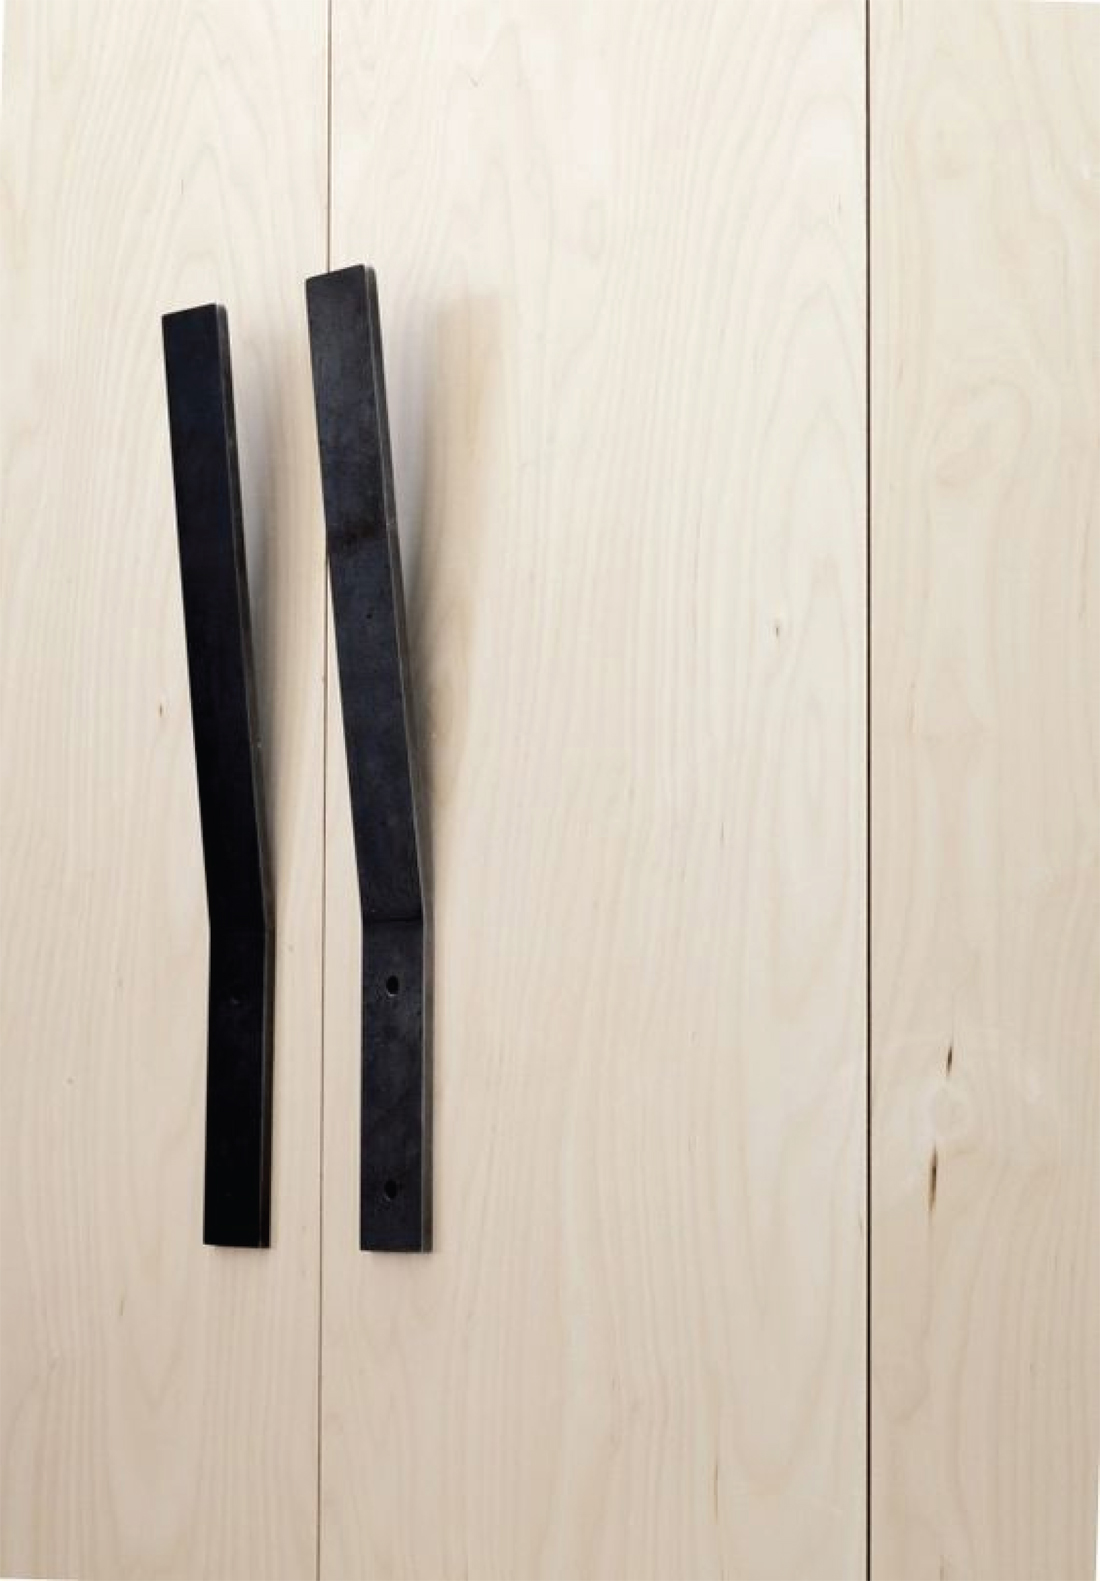 Currently Loving: Over-sized Hardware - Cabinet Pulls by Tom Kundig